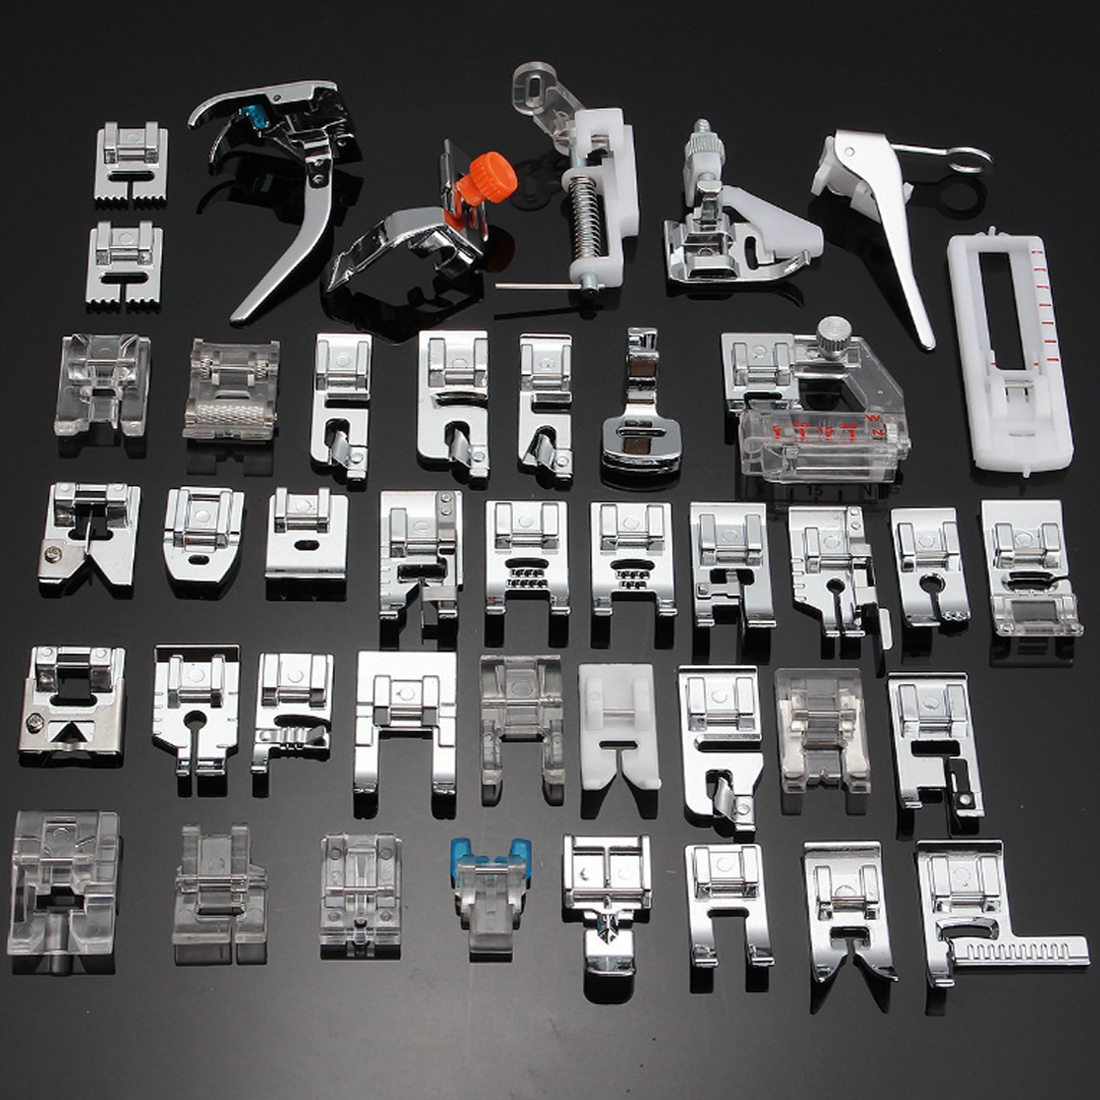 42 Pcs Presser Foot Feet Kit Sewing knitting Crochet Hooks Domestic Machine Stitch Darning Presser Foot Feet For Brother Singer